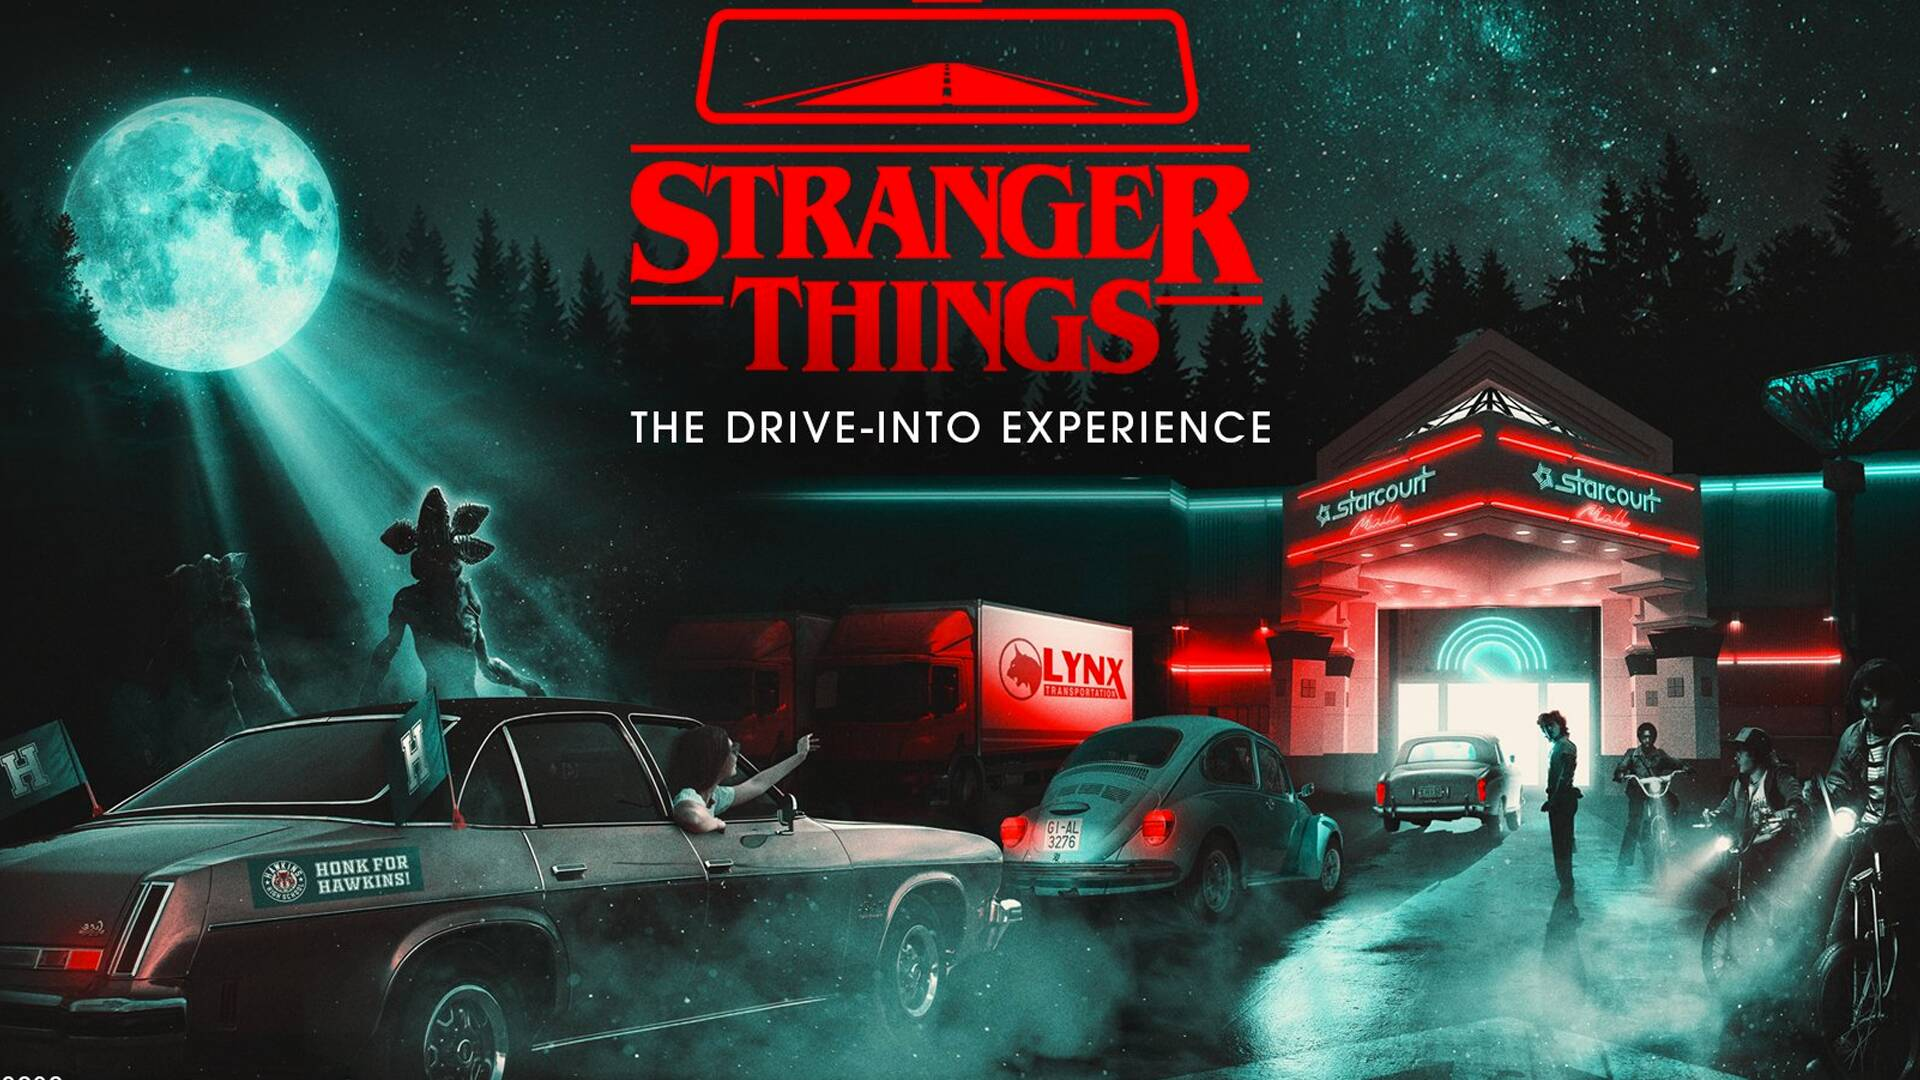 Stranger Things - The drive-into experience